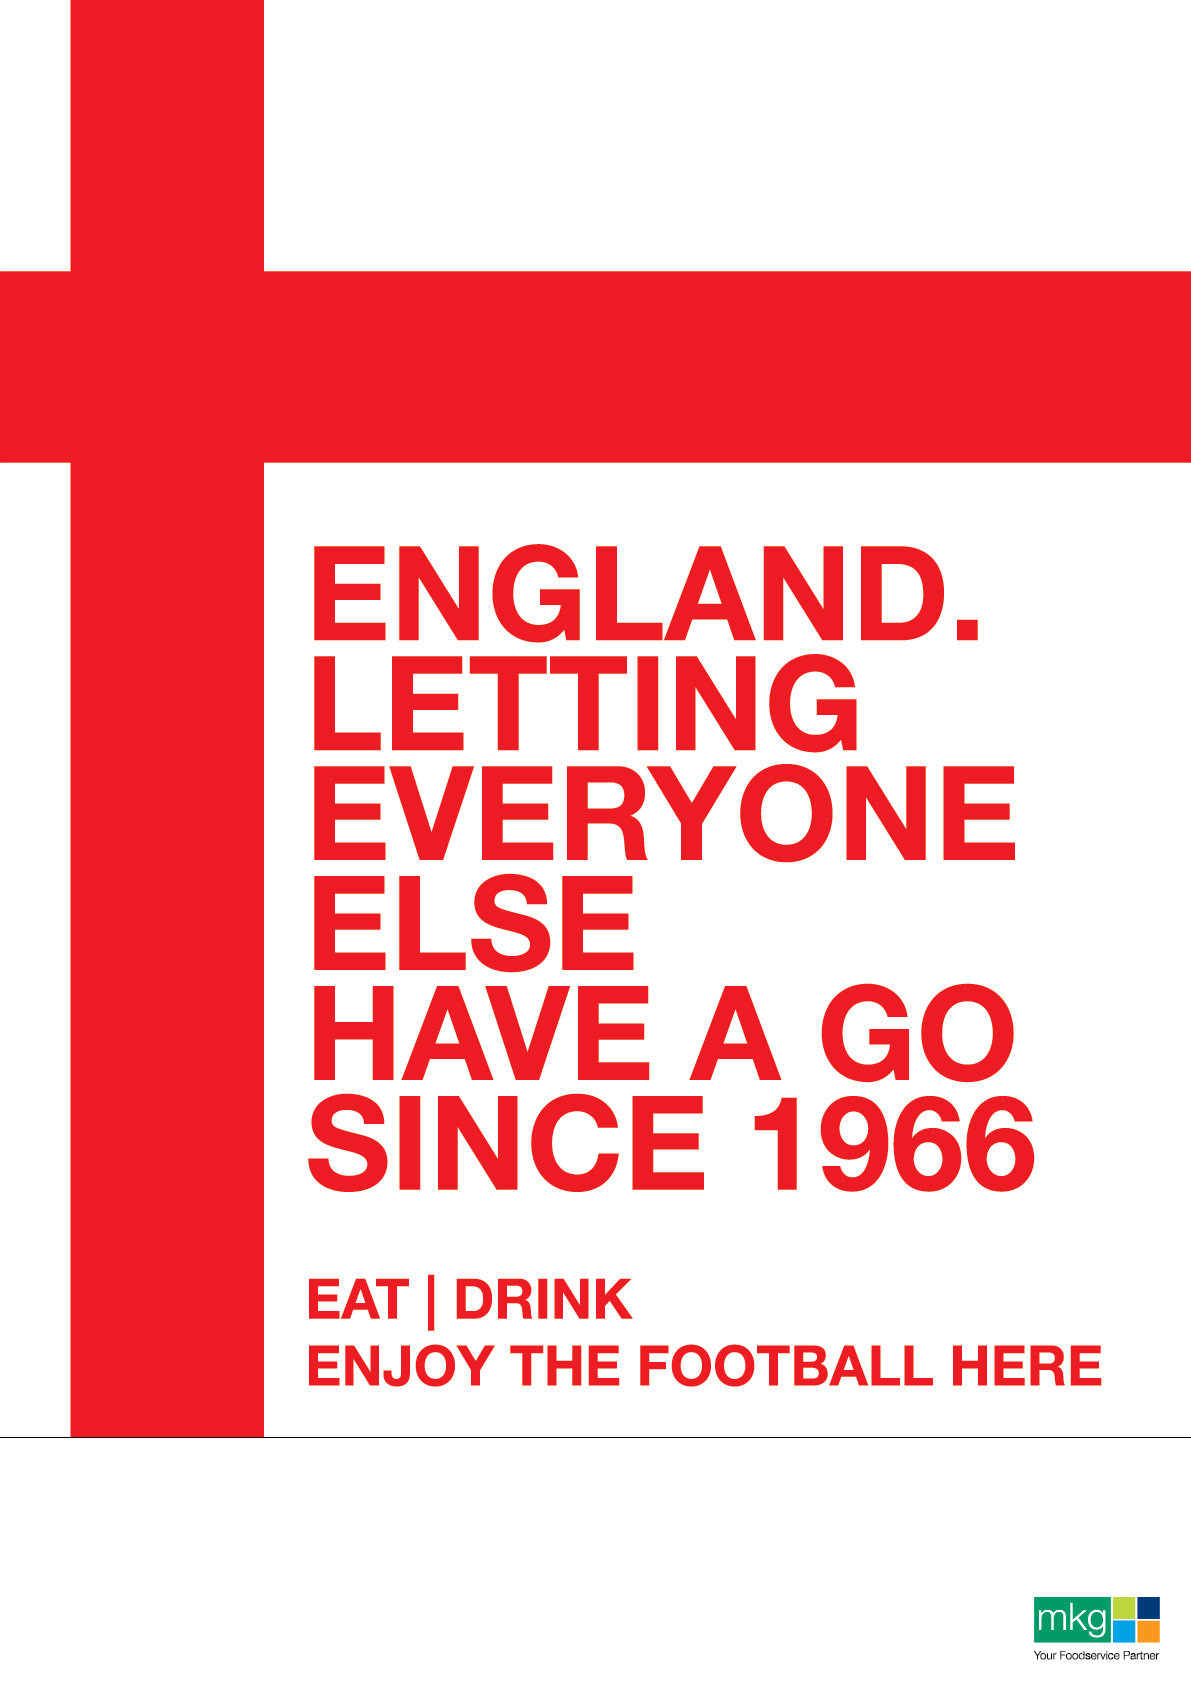 England - Letting everyone else have a go since 1966. World Cup Poster - MKG Foods